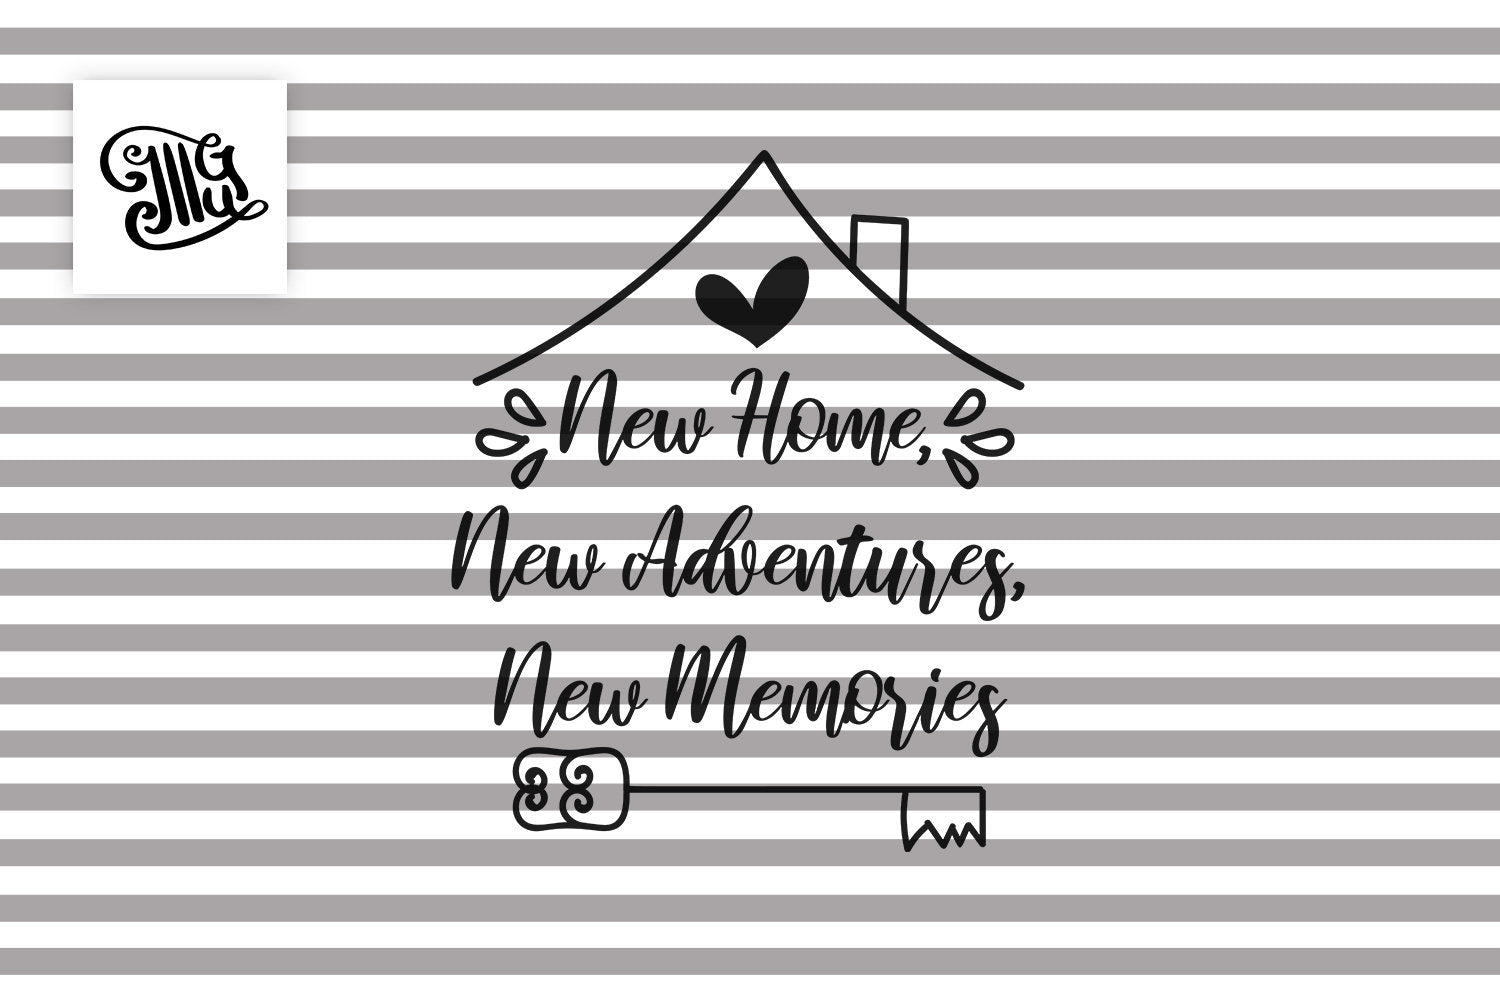 New home, new adventures, new memories SVG, Christmas new home svg, first christmas in new home svg, Christmas ornaments svg, Christmas sign-by Illustrator Guru